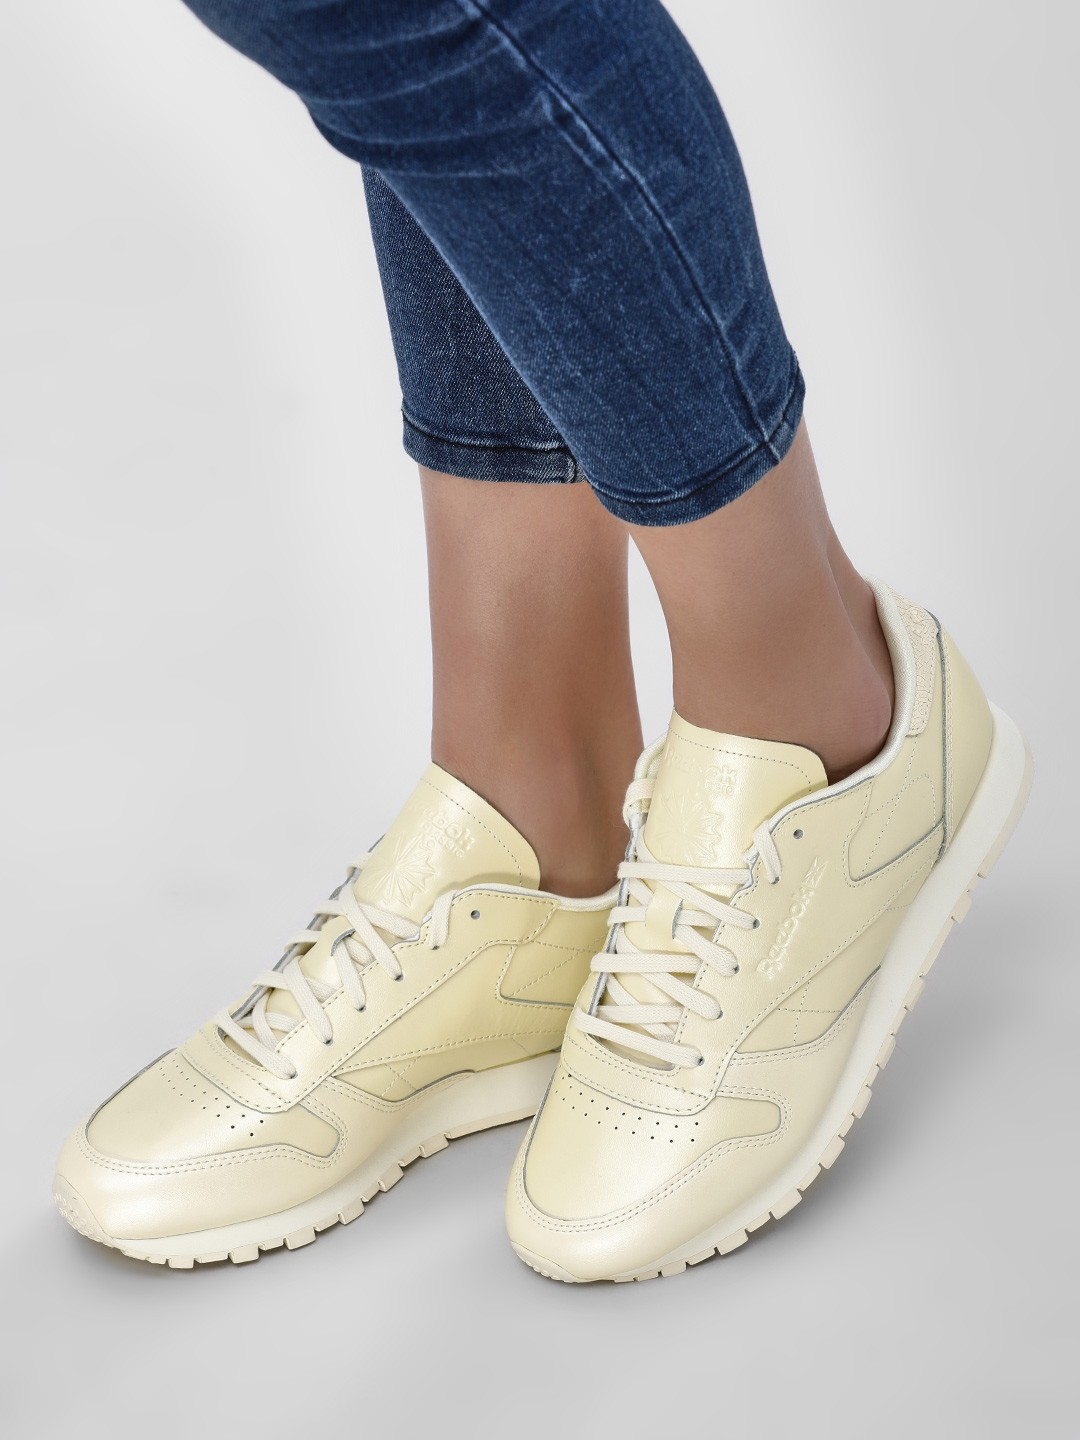 Reebok Classics Yellow Casual Shiny Trainers 1